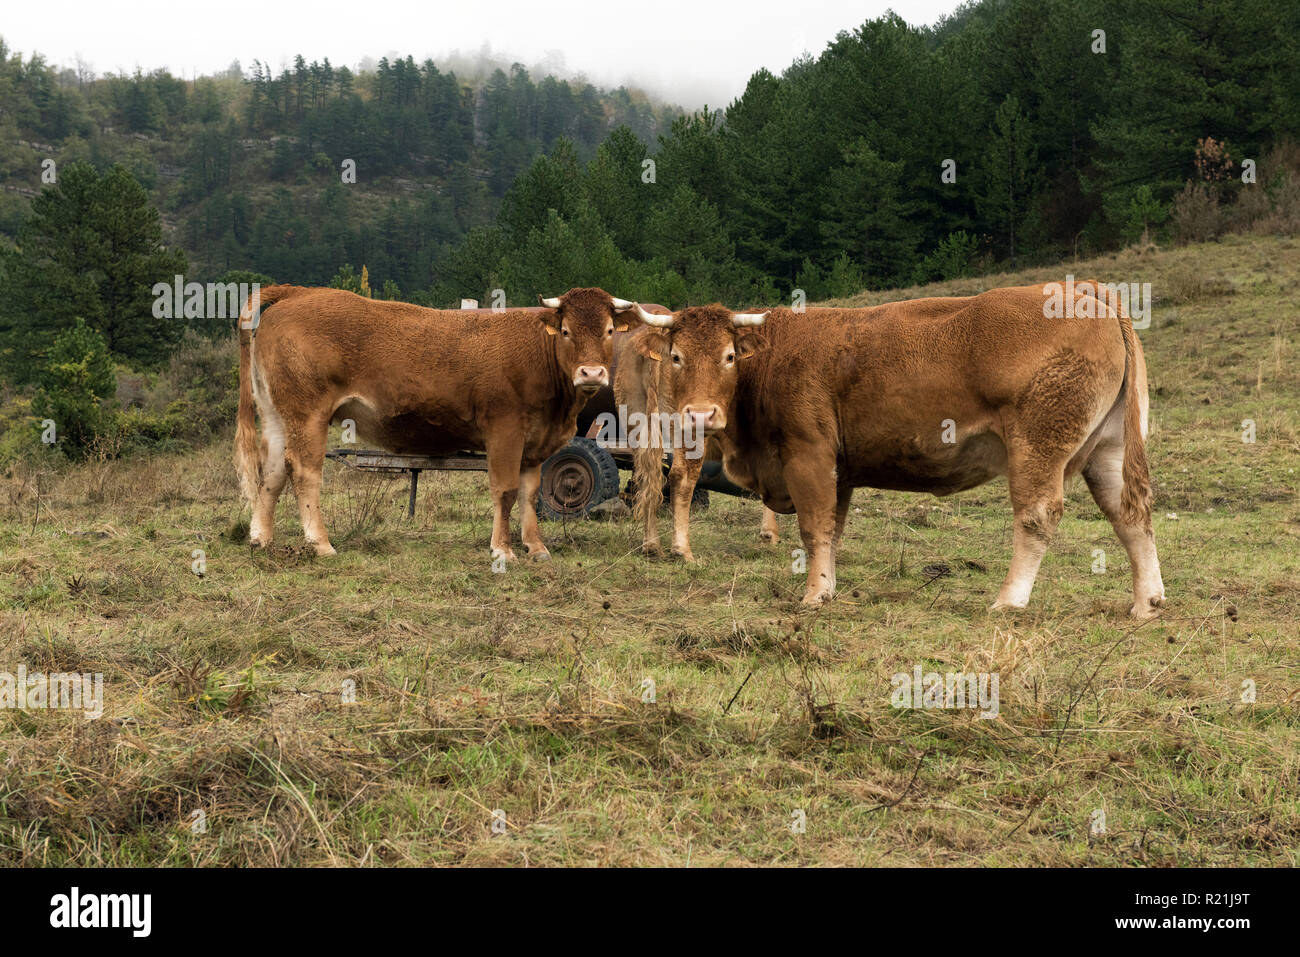 Cows Ardèche France - Stock Image